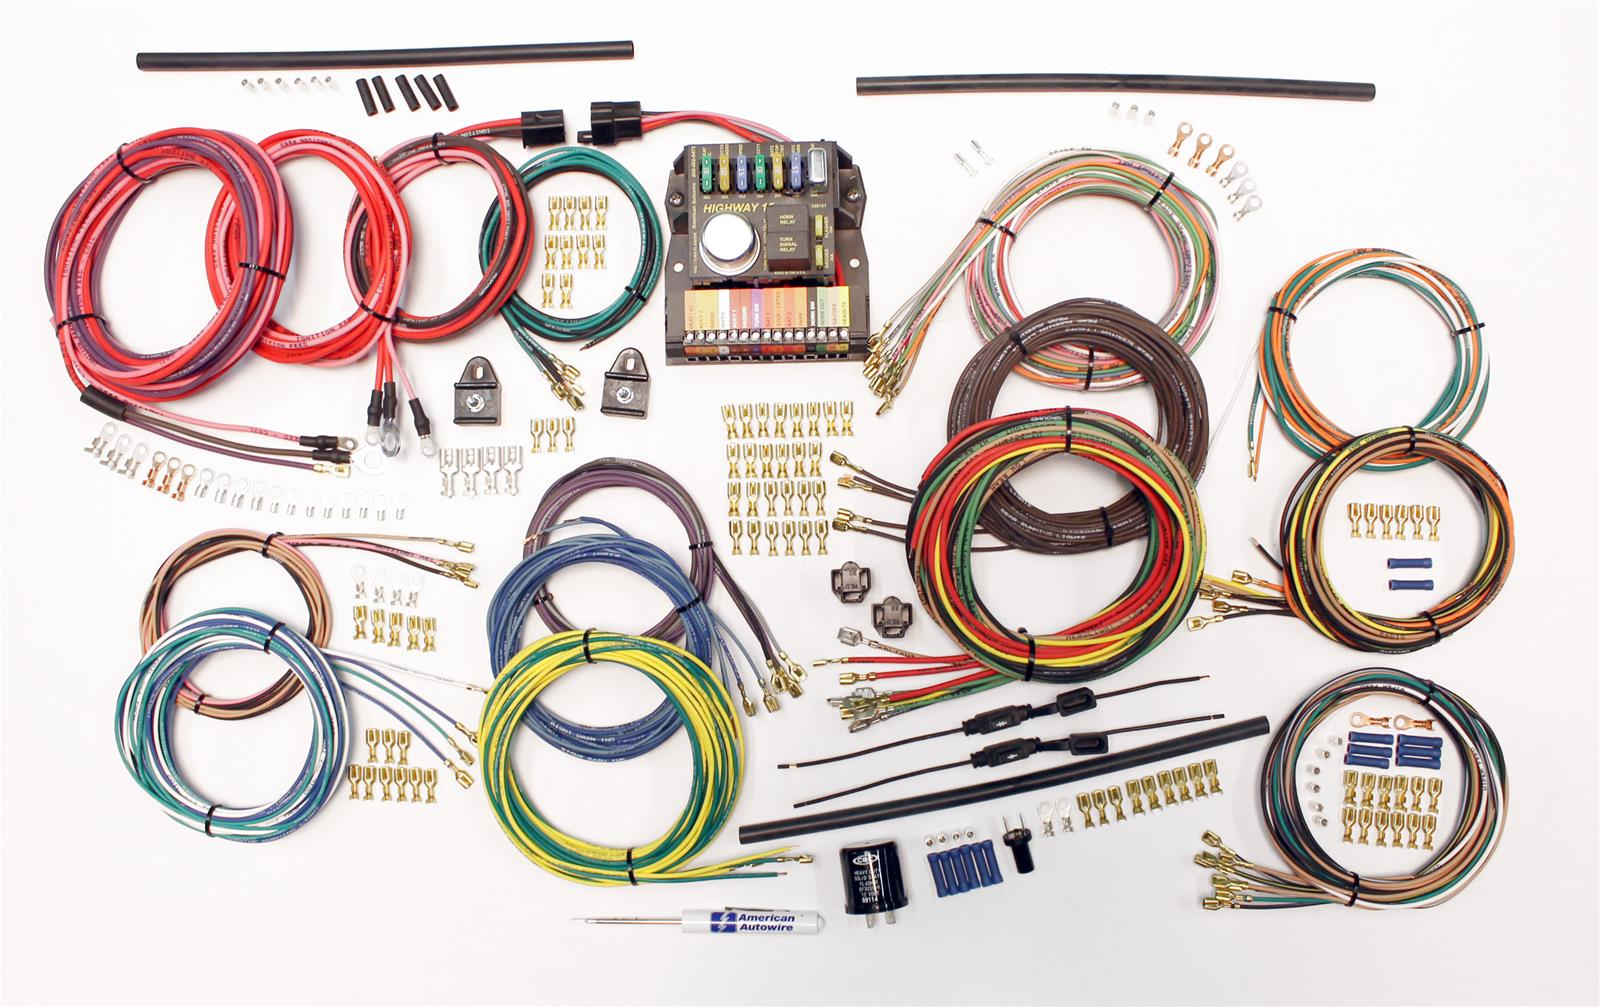 american autowire classic update series wiring harness kits 510419 73 beetle wiring diagram american autowire classic update series wiring harness kits 510419 free shipping on orders over $99 at summit racing